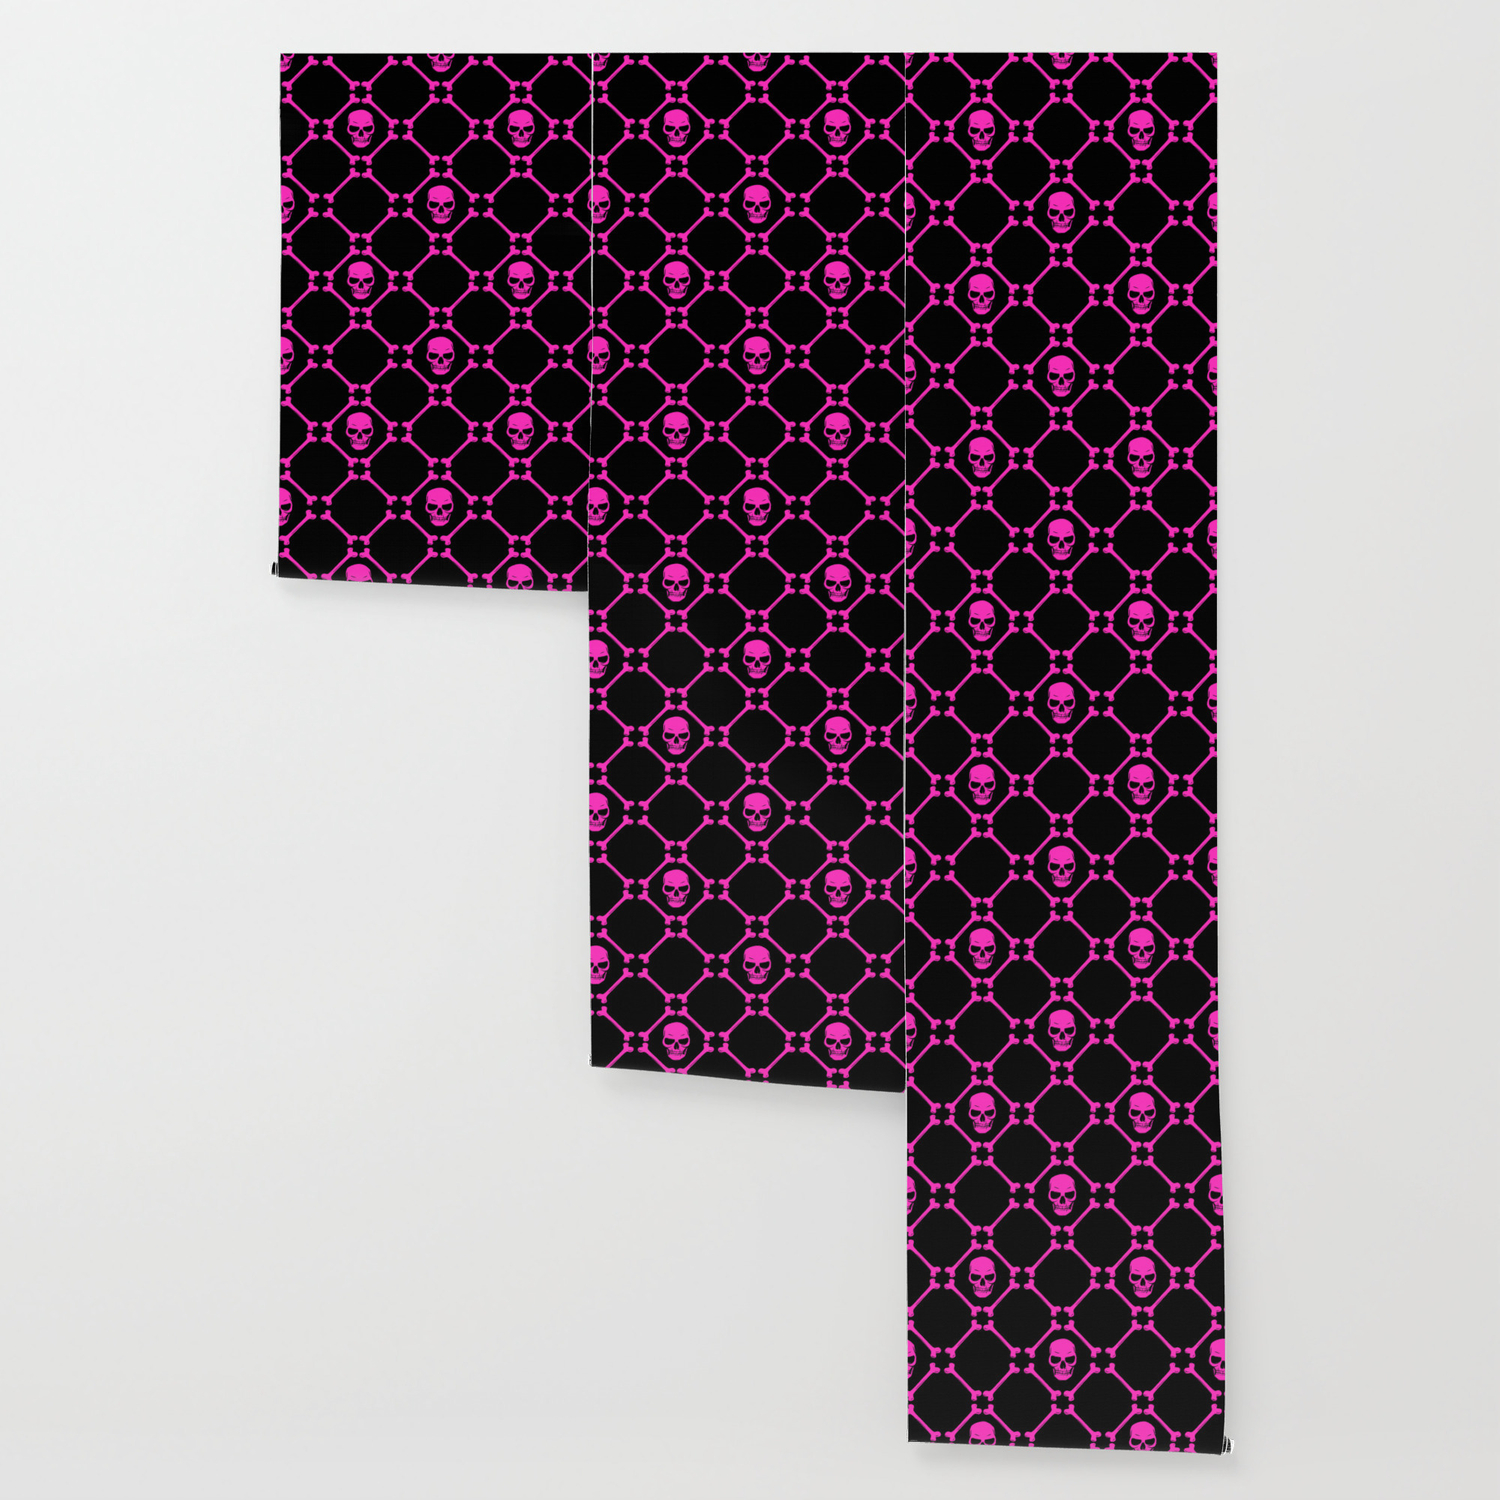 Skulls And Bones Hot Pink On Black Wallpaper By Mariamahar Society6